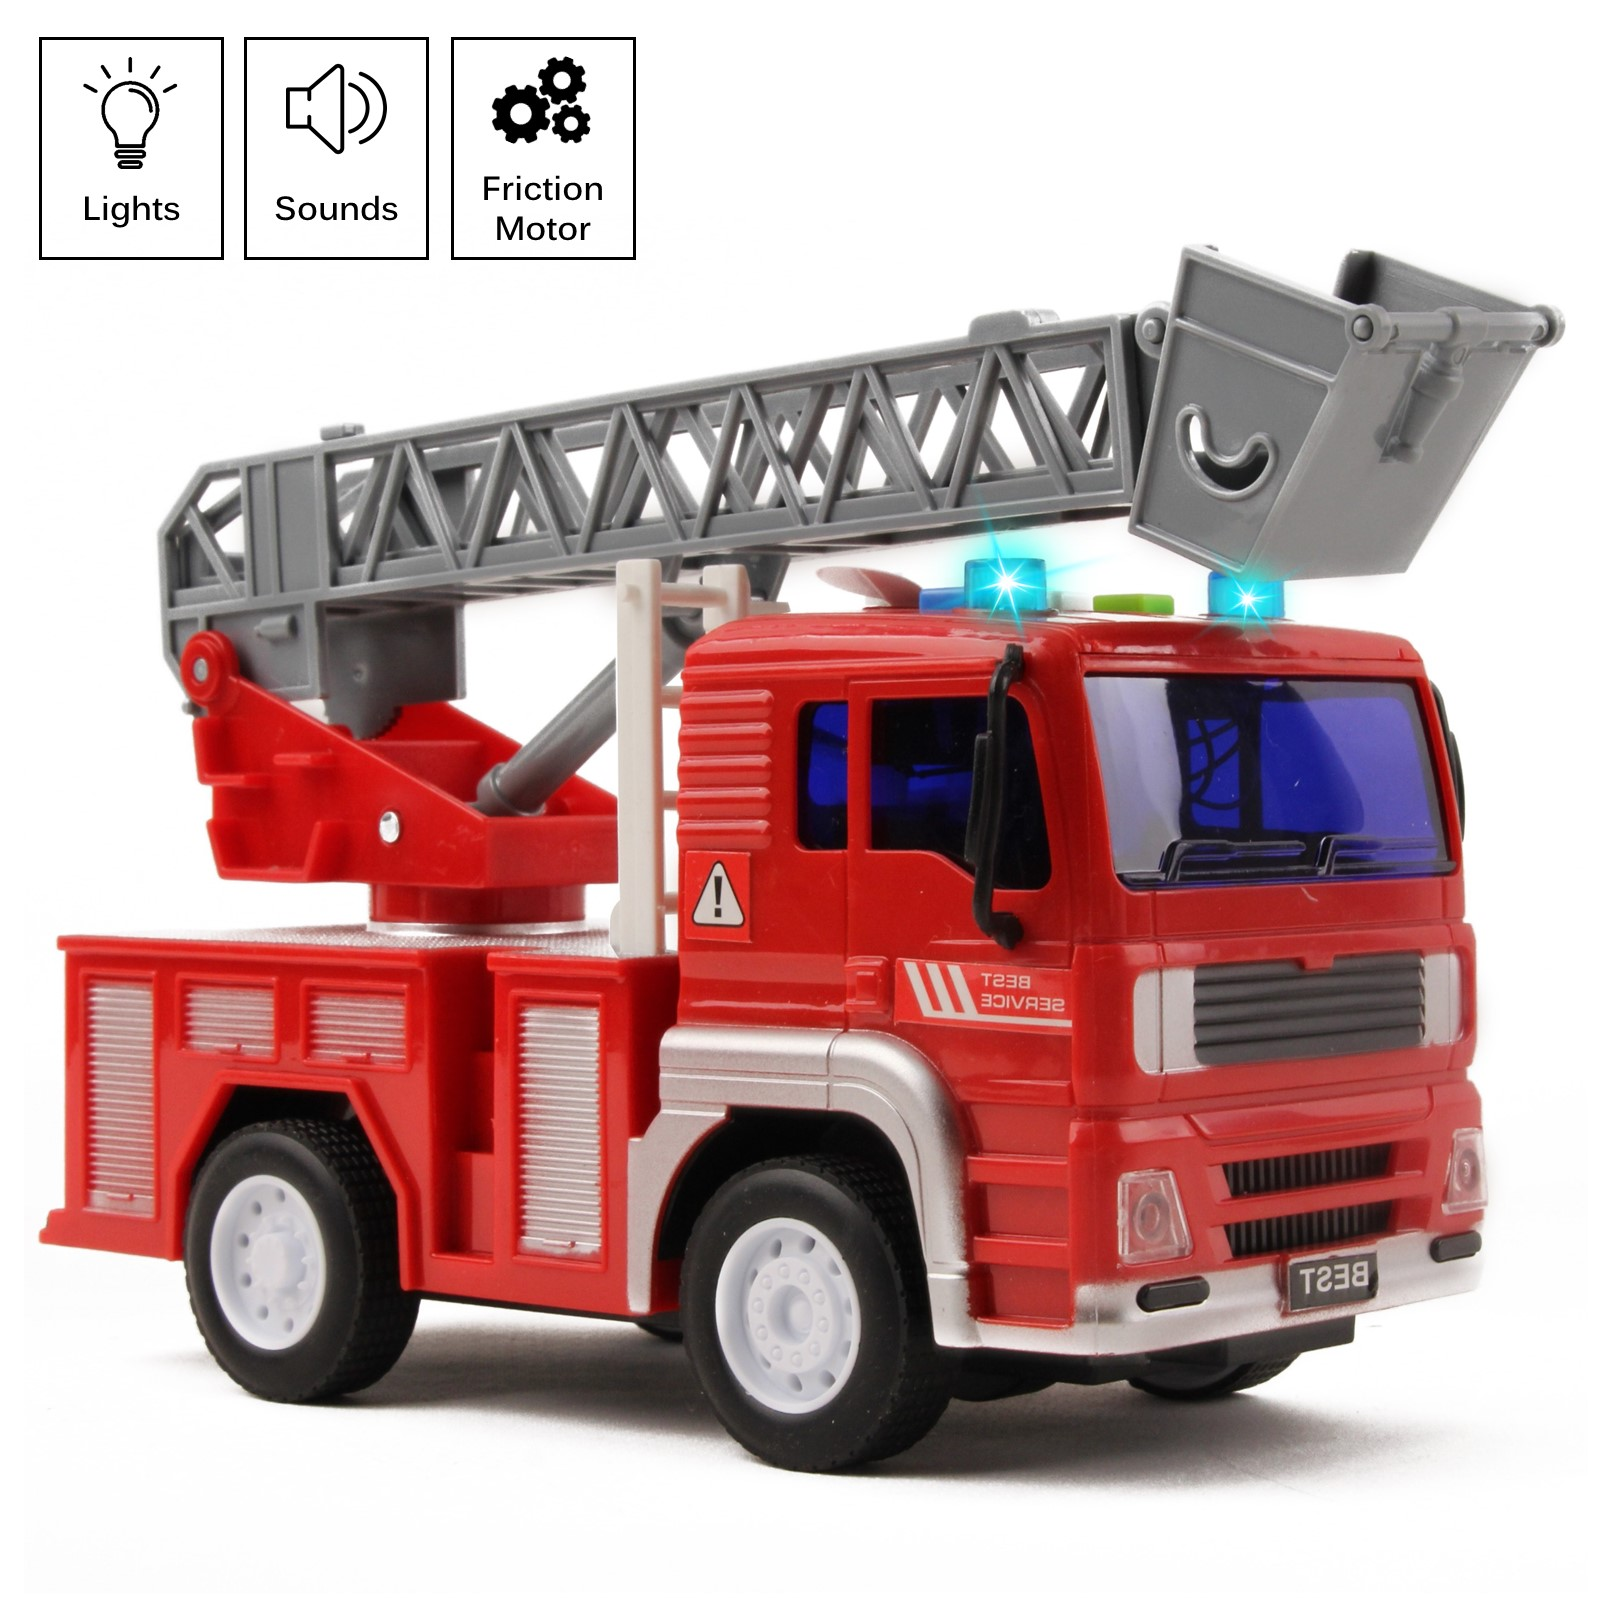 Fire Truck Rescue With Lights And Sounds 125 Extending Ladder 360 Rotation Friction Powered Toy Car Kids Push And Go Firetruck Engine Vehicle Pretend Play Great Gift For Children Boys Girls